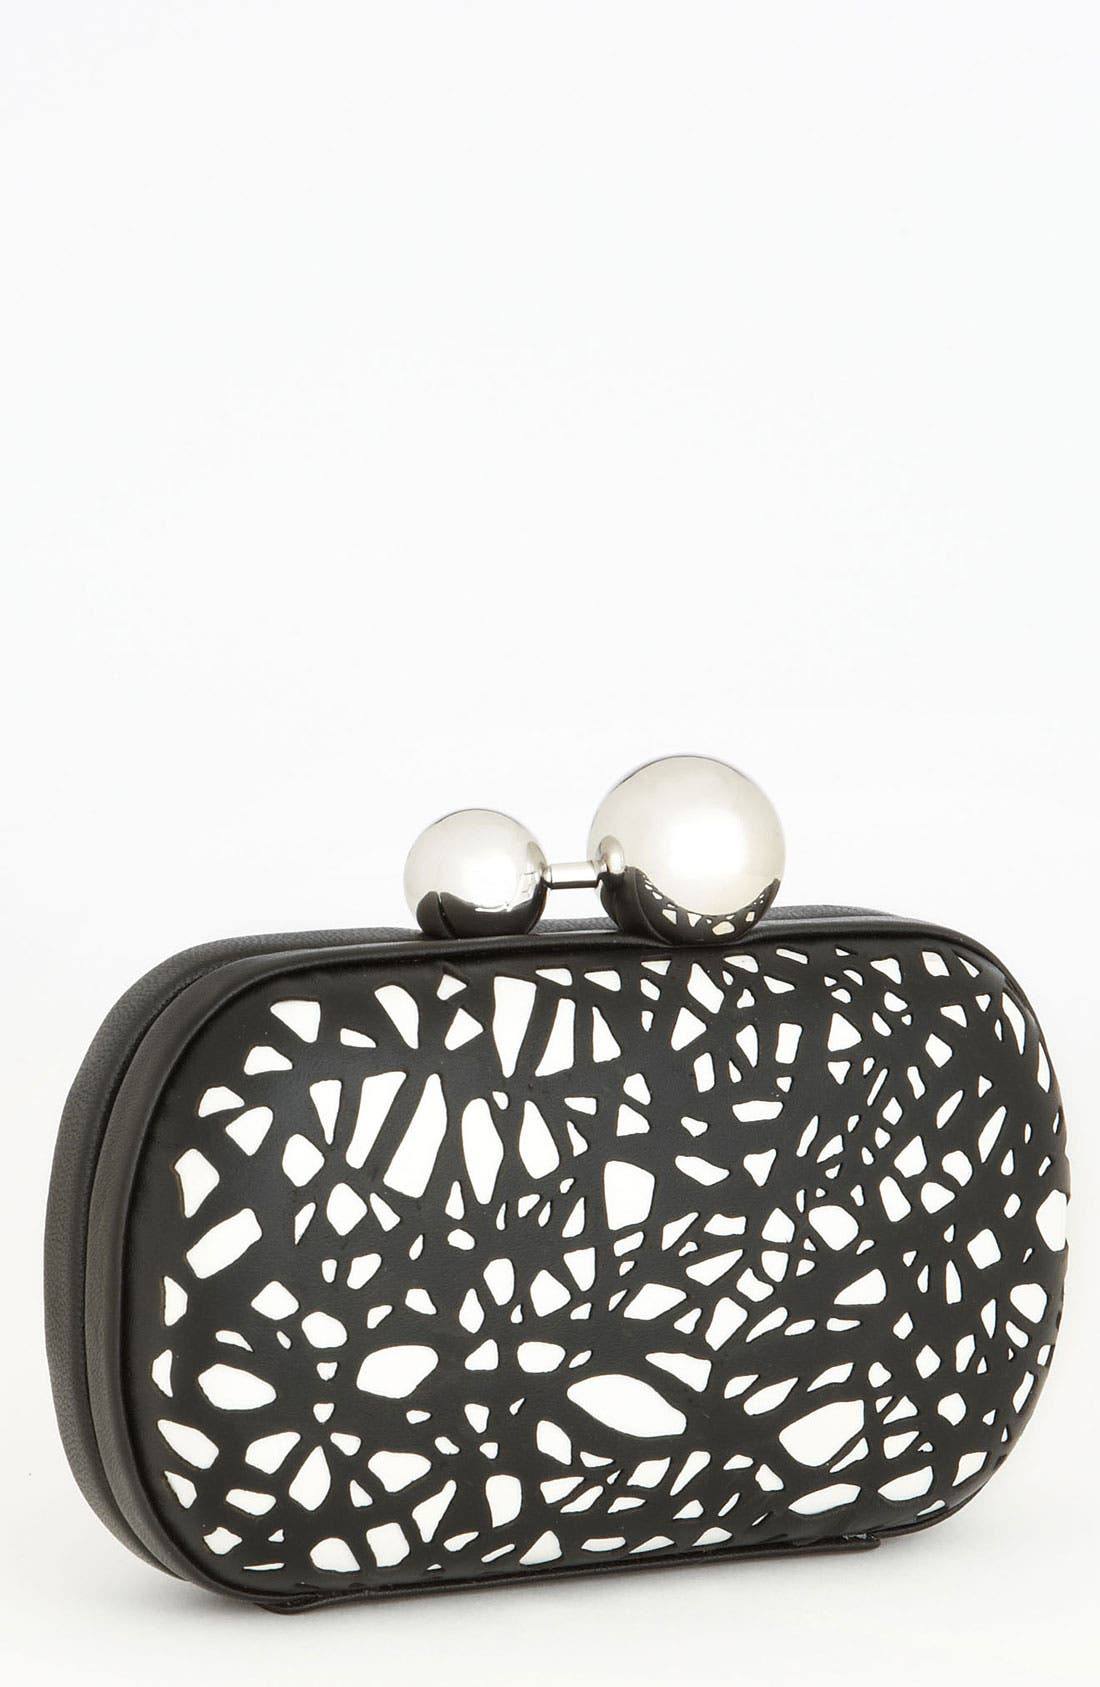 Alternate Image 1 Selected - Diane von Furstenberg 'Sphere' Laser Cut Leather Clutch